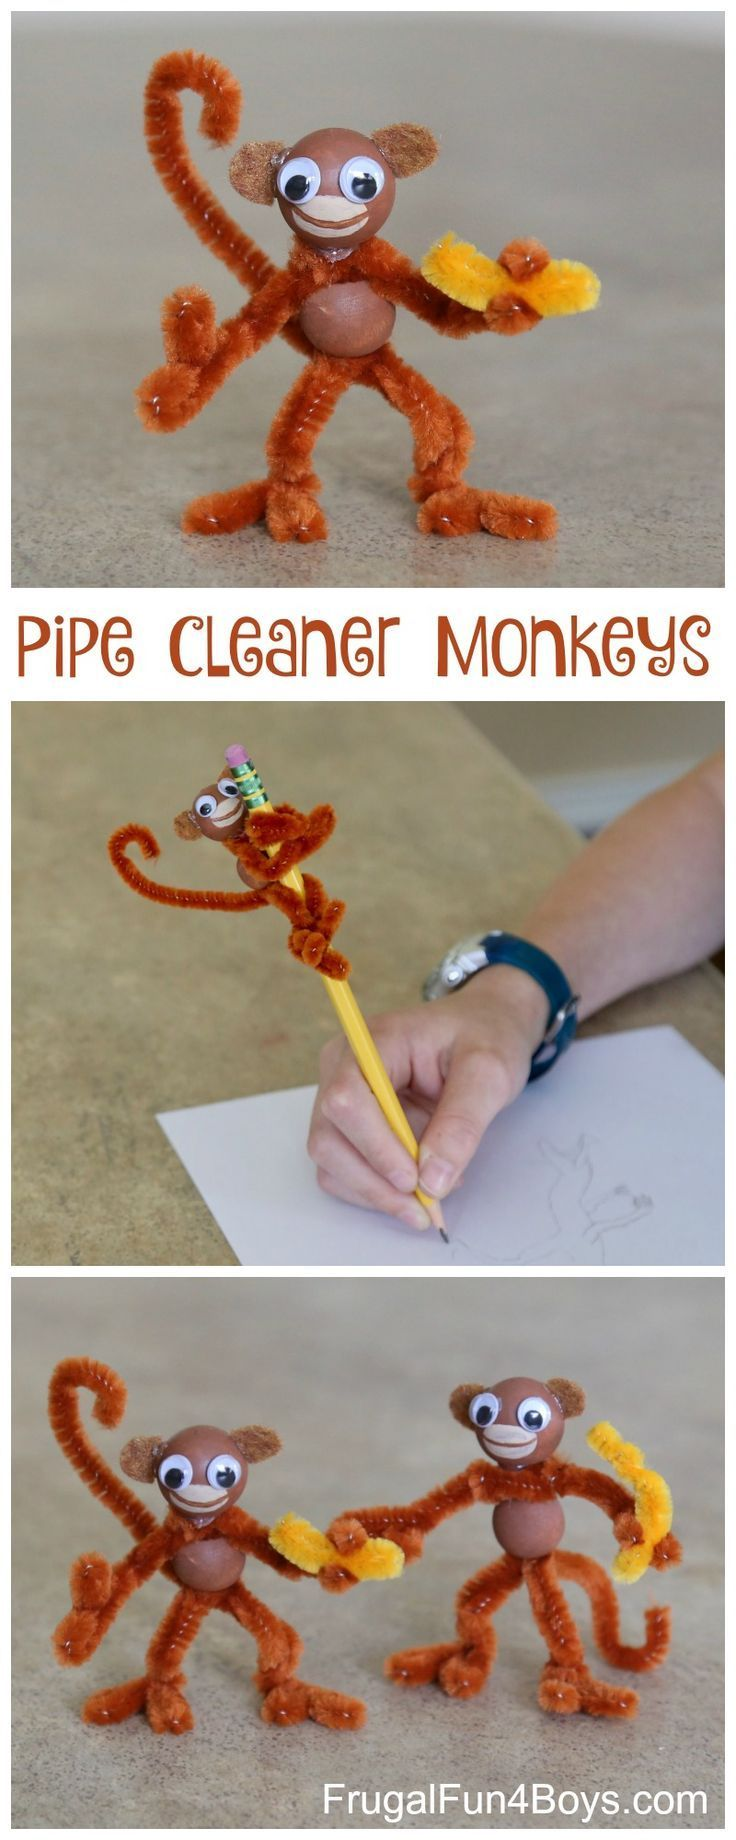 Pirate crafts for toddlers - Kids Craft Pipe Cleaner Monkeys